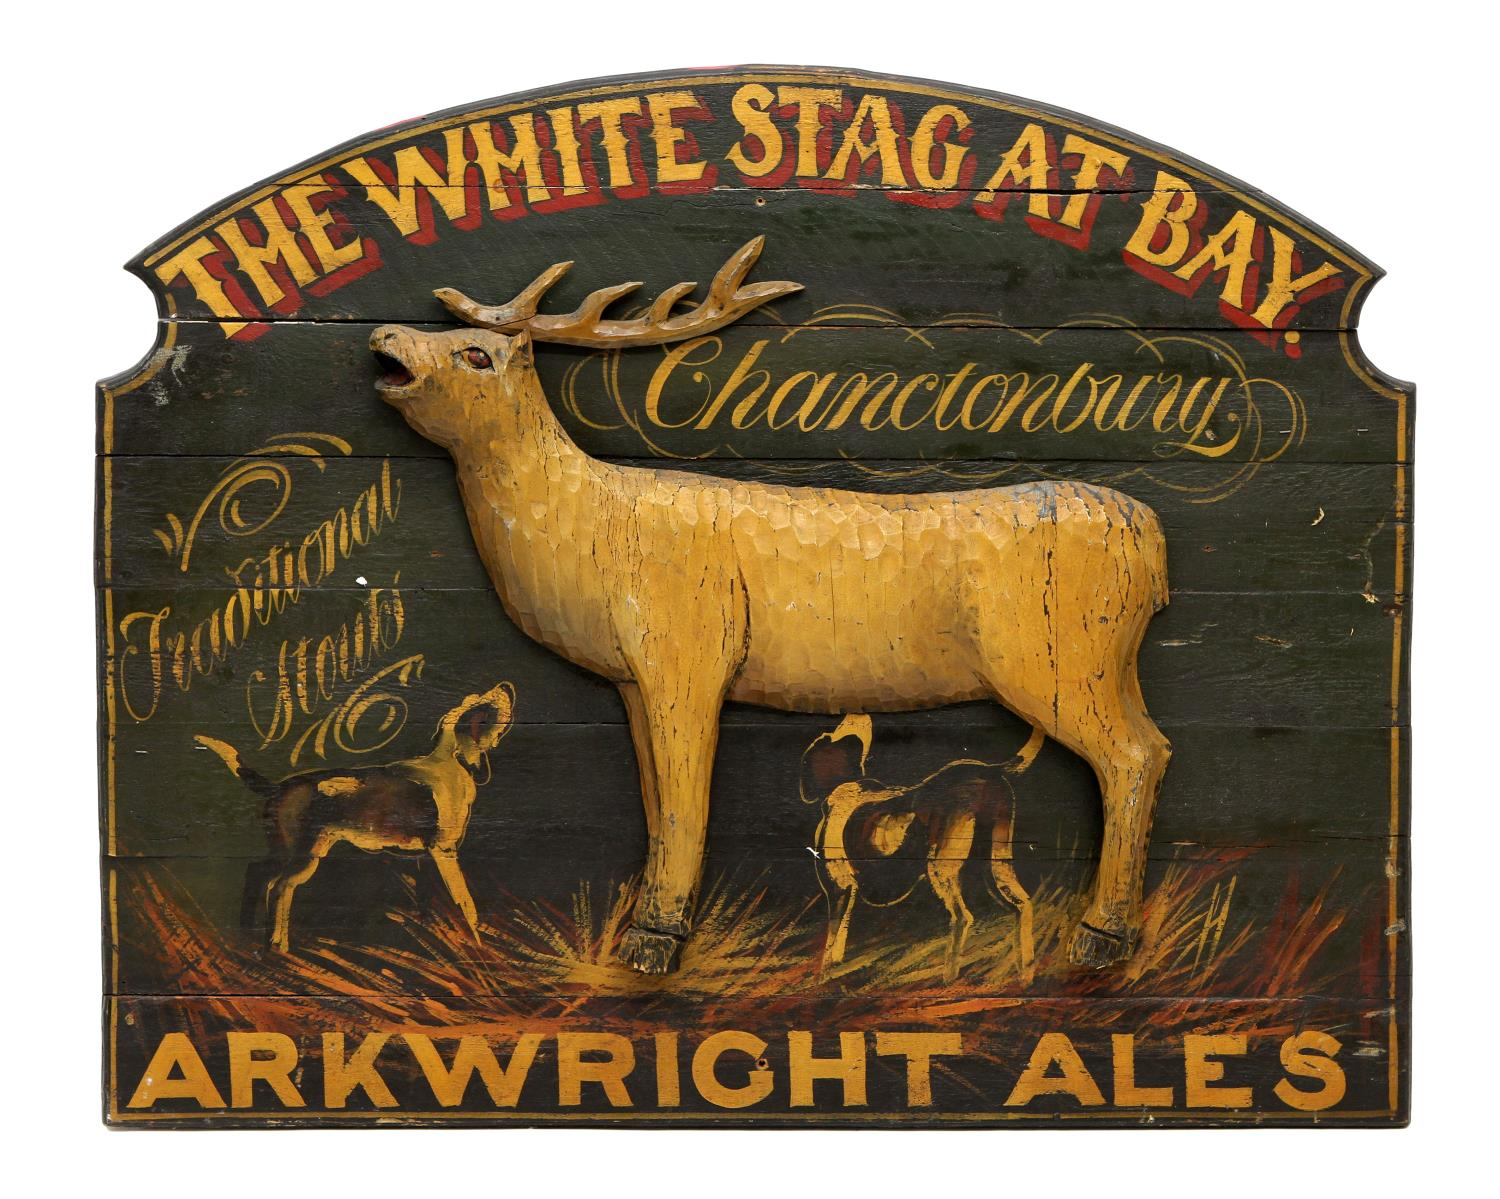 Is white stag an English brand?